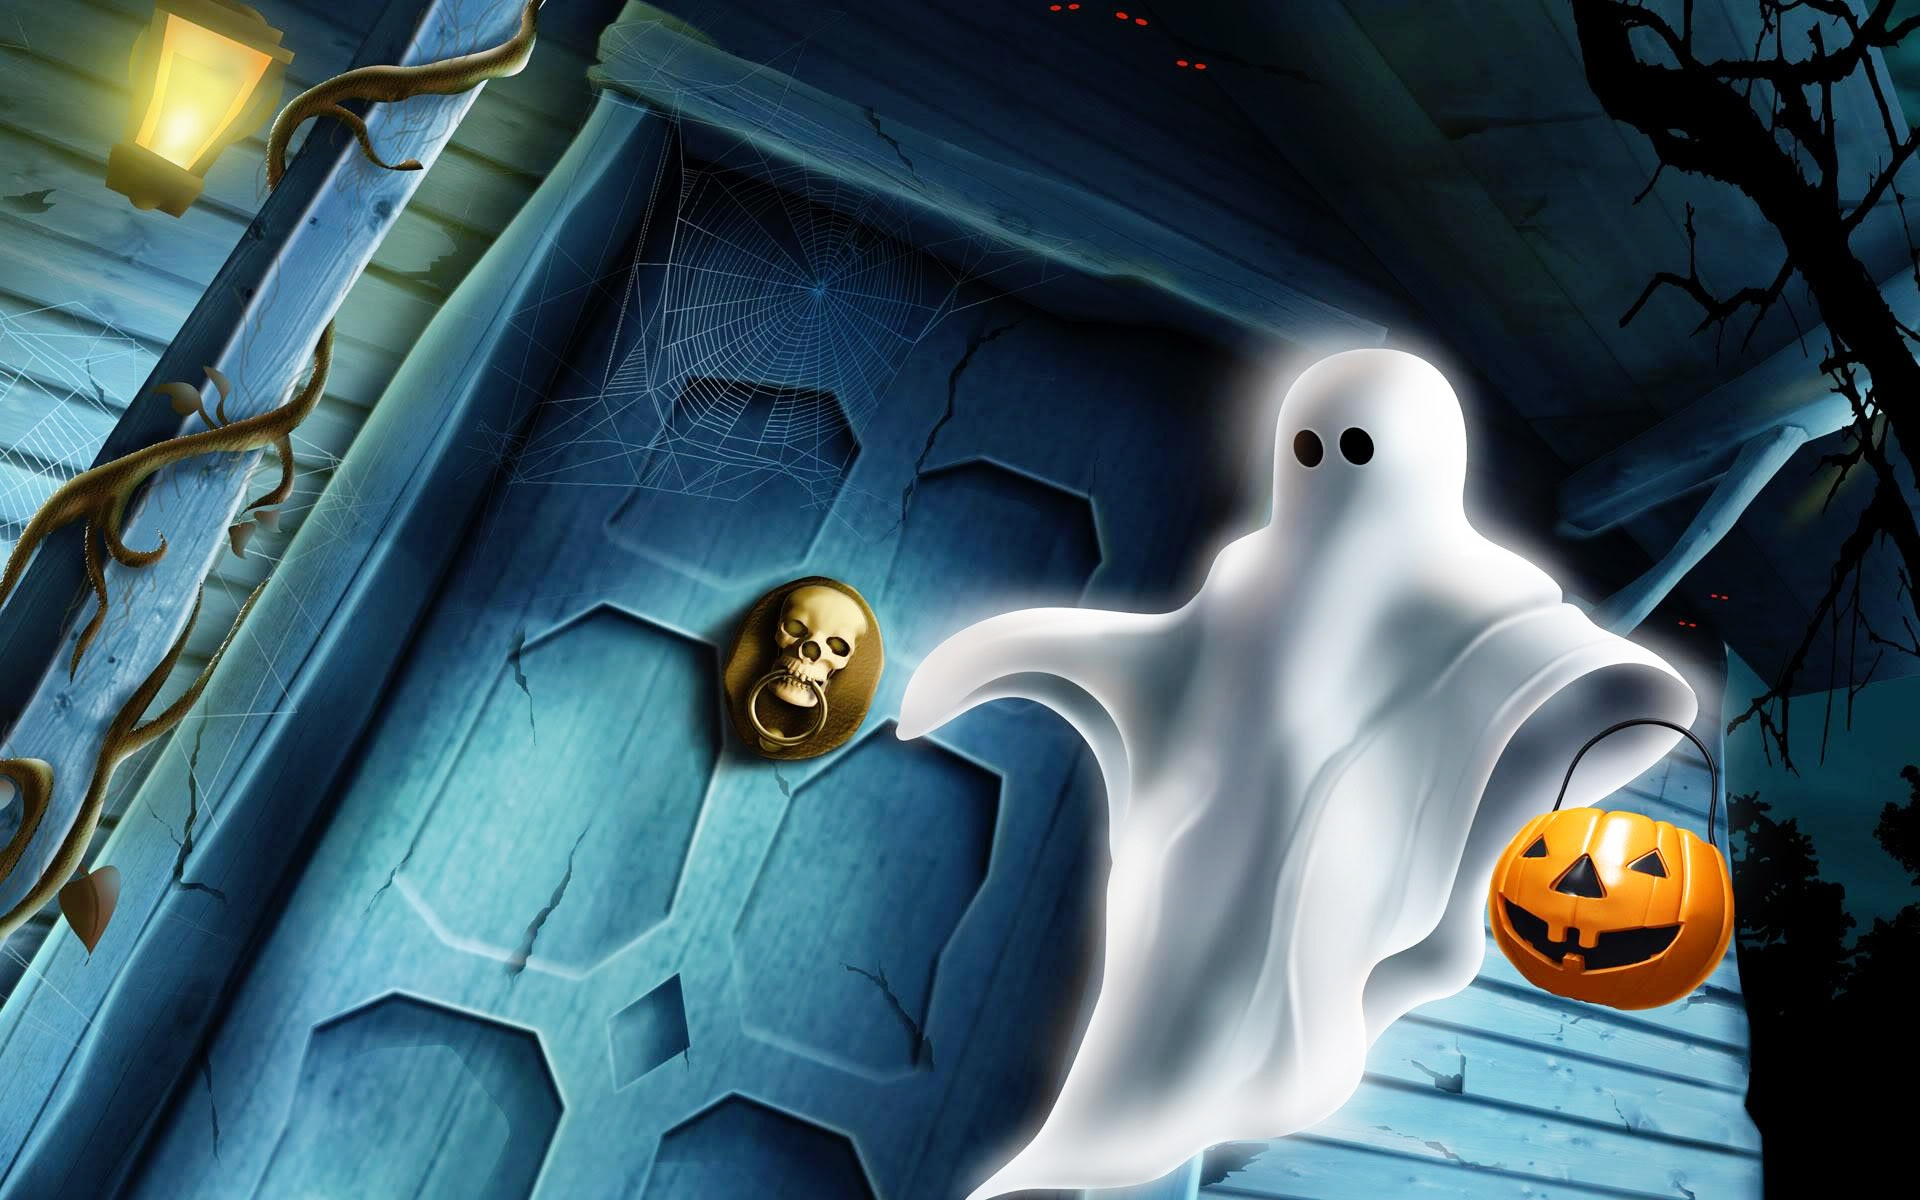 Halloween Ghost 331.83 Kb